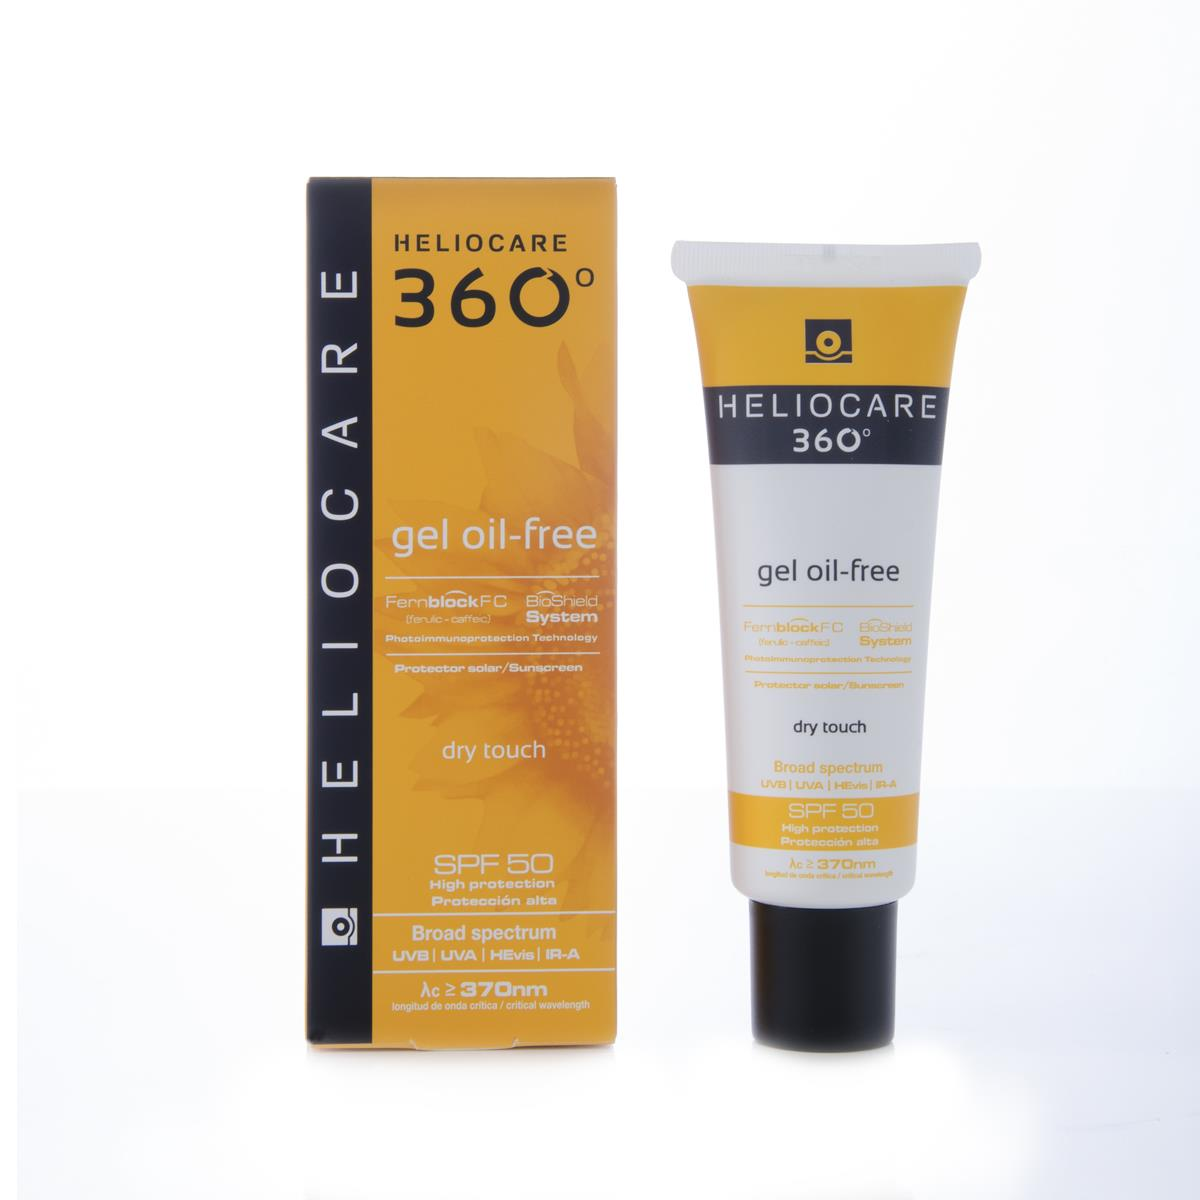 Heliocare 360 Gel Oil Free 50 Ml